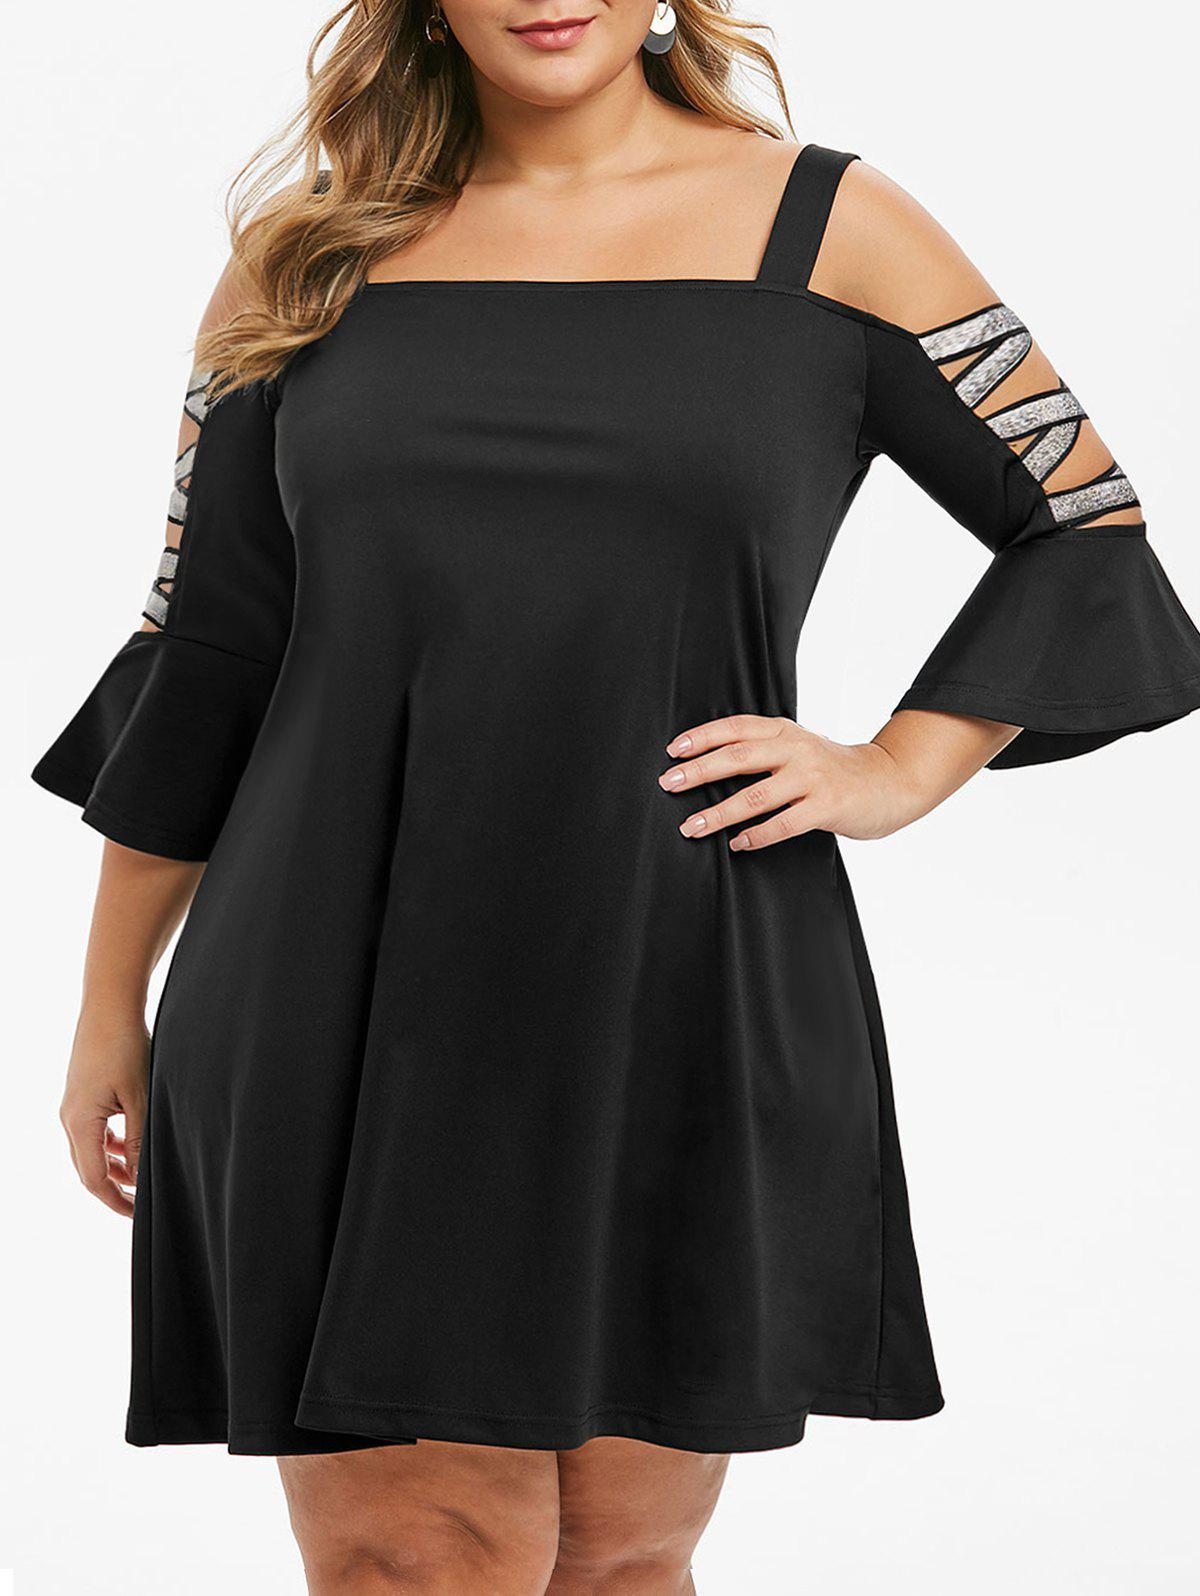 Trendy Metallic Threads Glittery Cold Shoulder Plus Size Dress